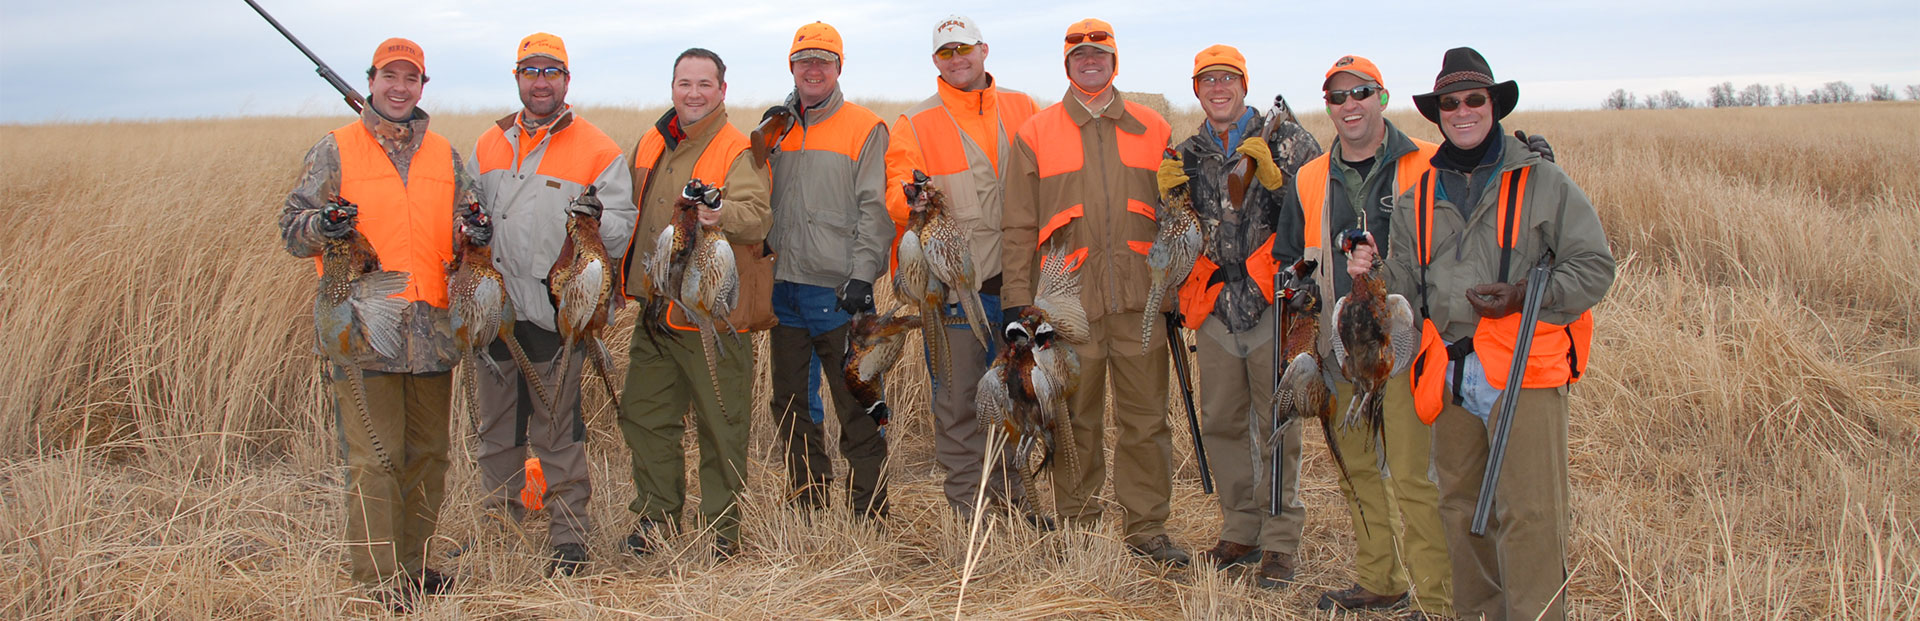 South Dakota Pheasant Hunting Experience of a Lifetime